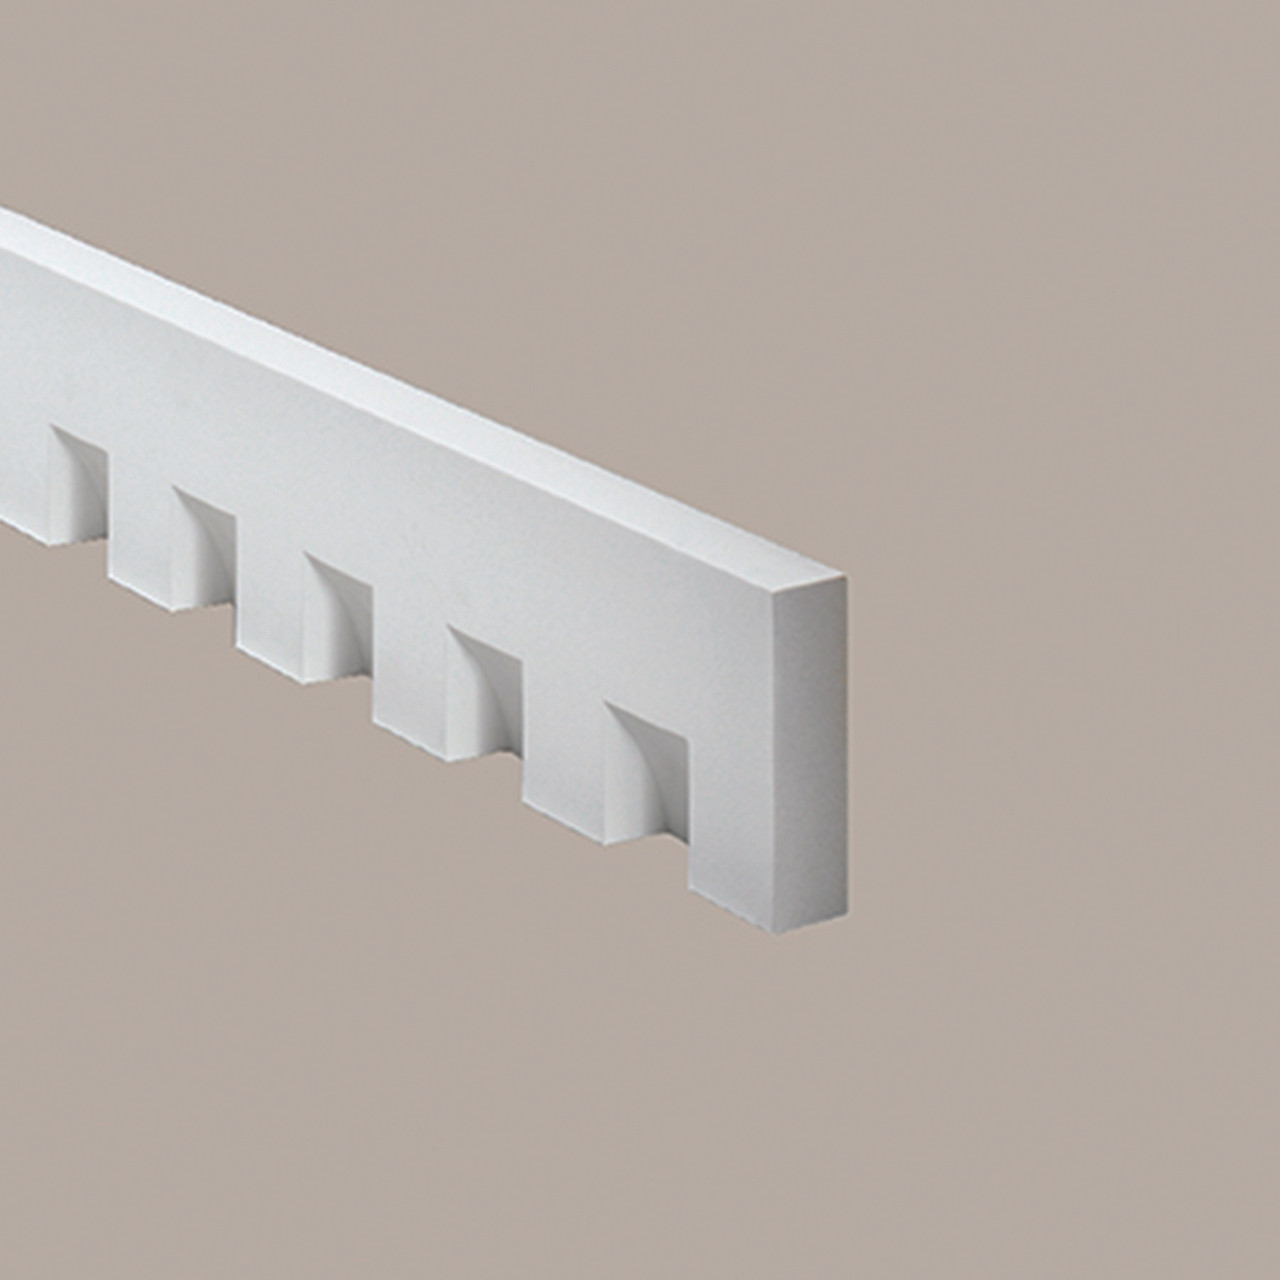 Mld320 16 for Fypon quick rail